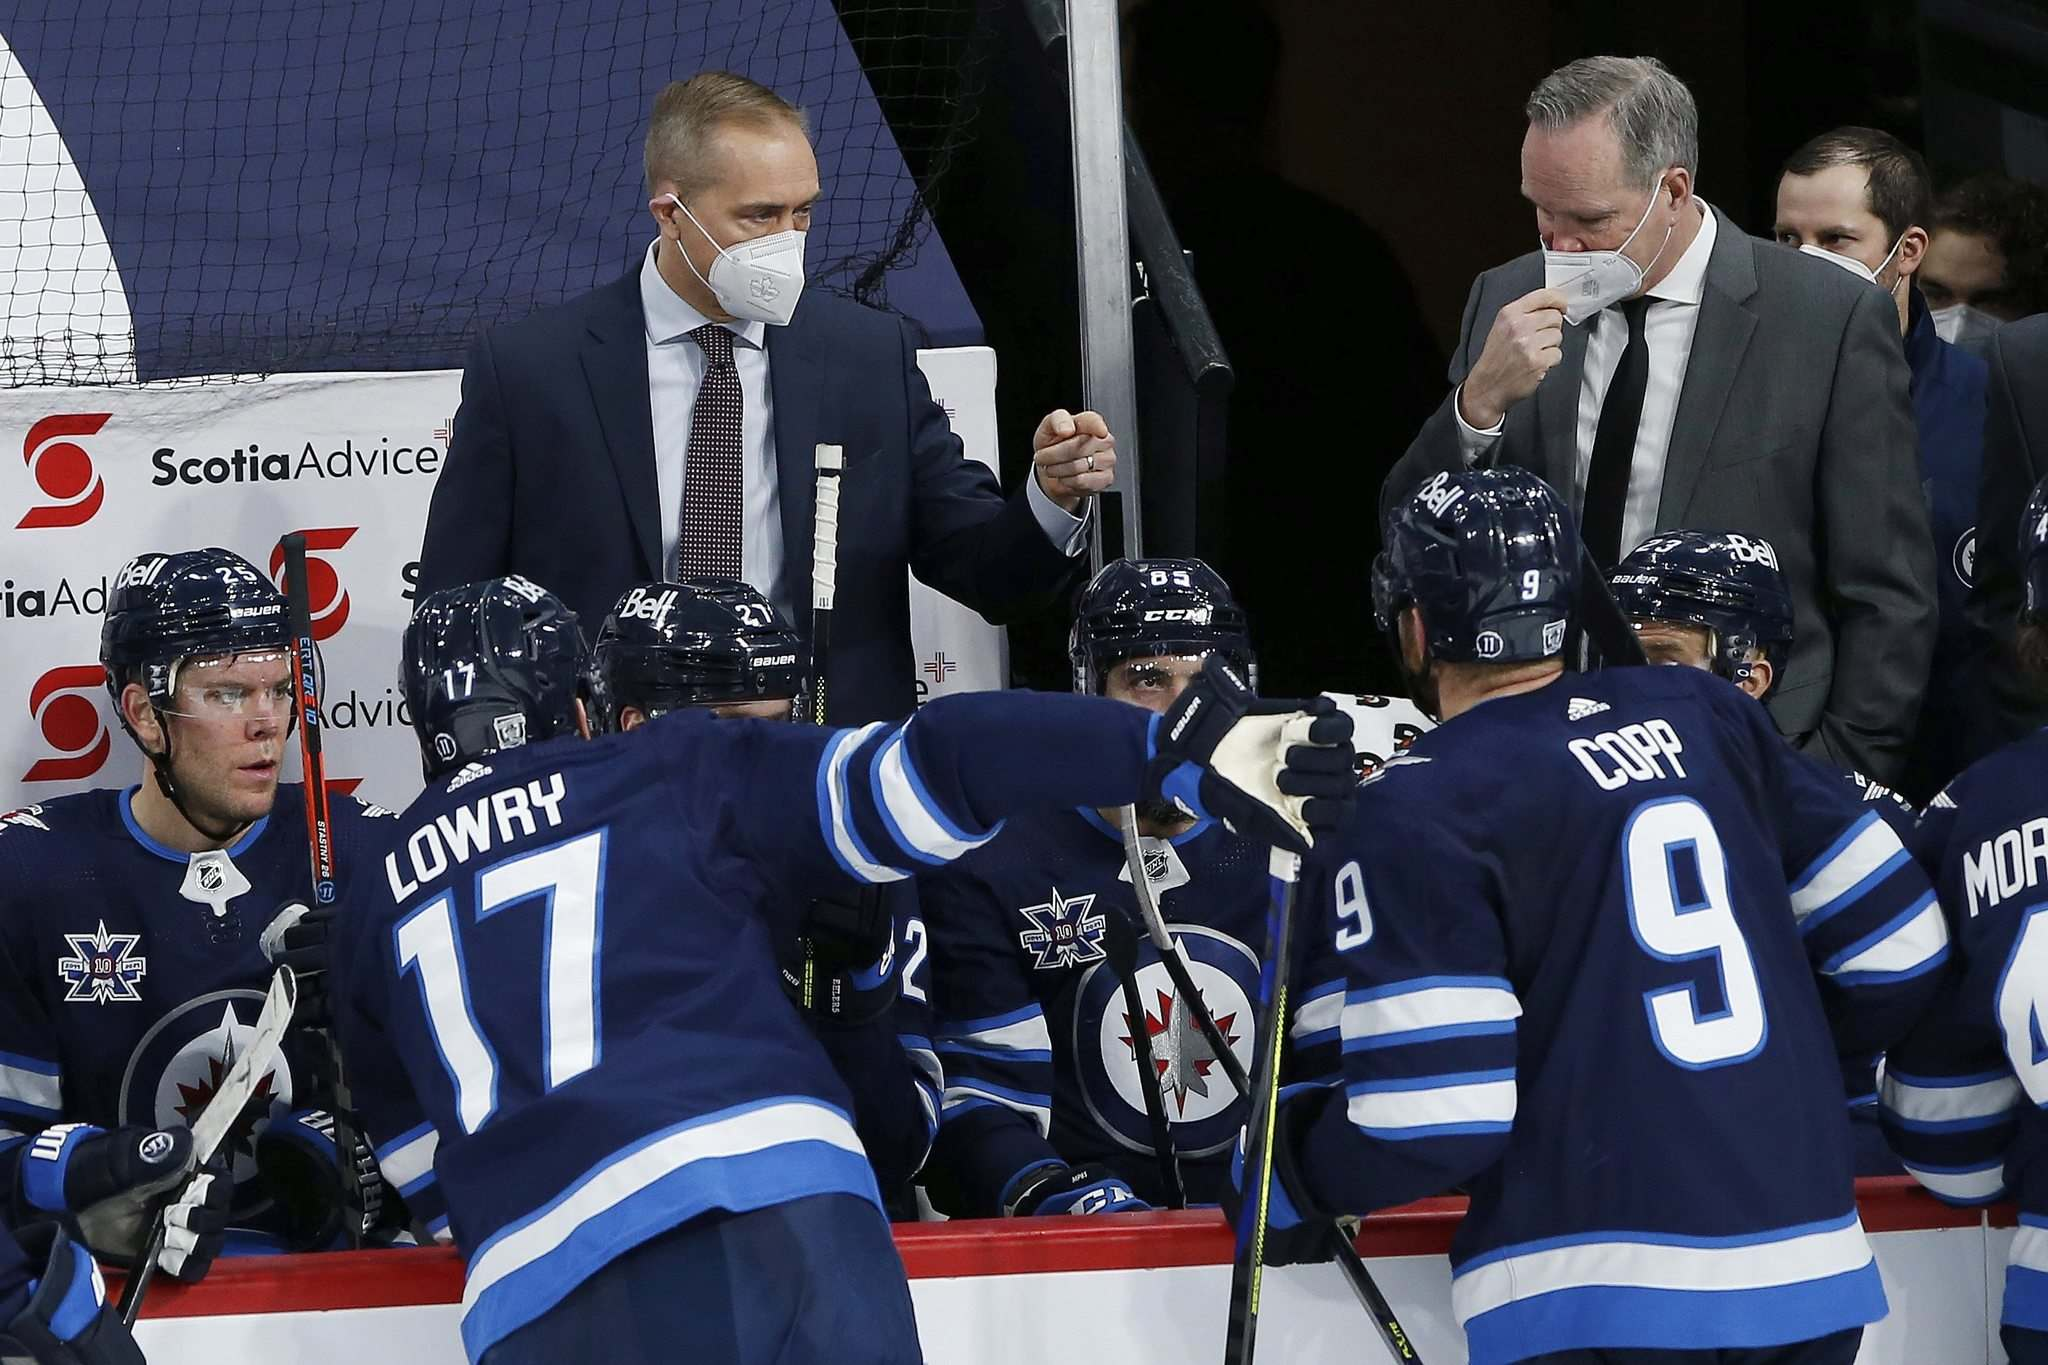 It's important for a team heading into the playoffs to feel positive, says Winnipeg Jets head coach Paul Maurice. (John Woods / The Canadian Press files)</p></p>